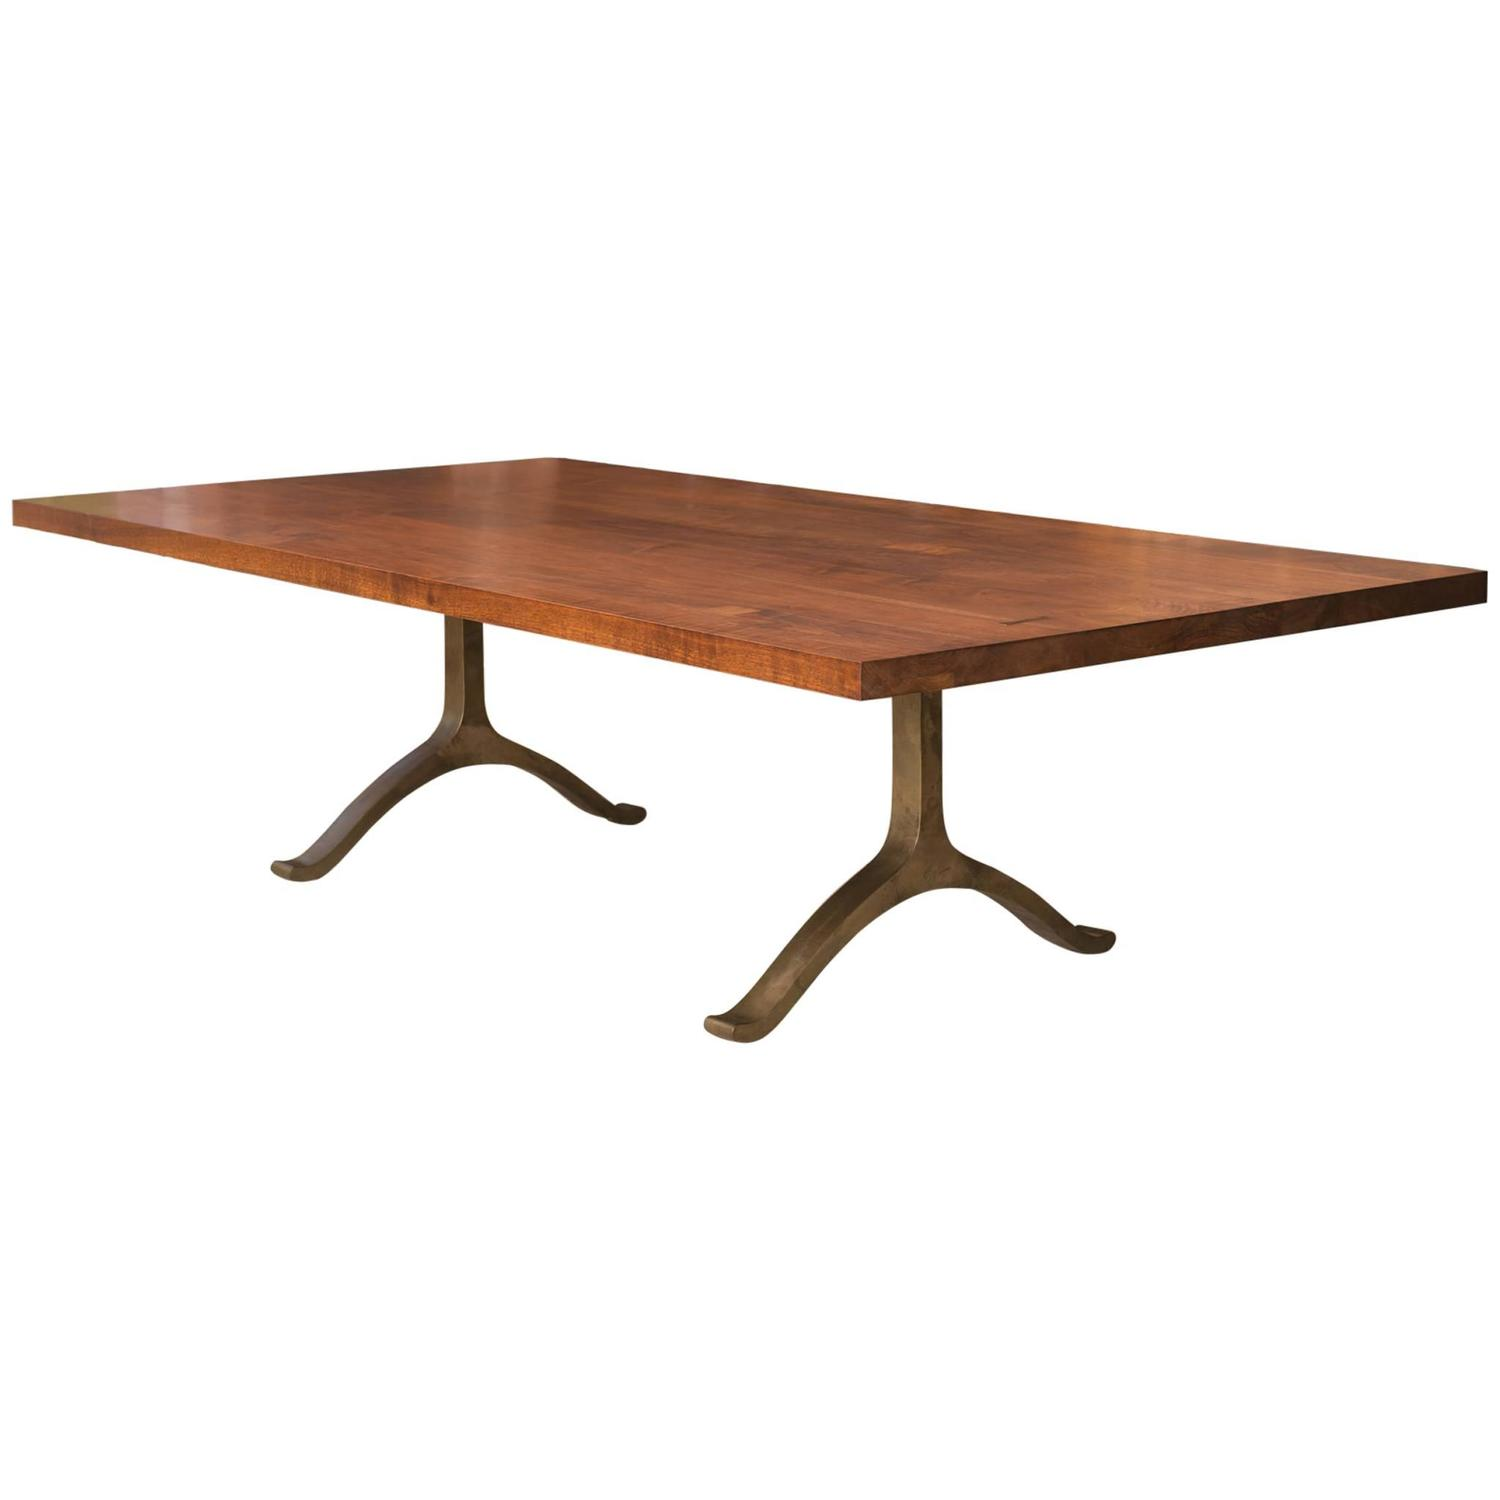 Claro walnut and bronze dining table by bddw at stdibs